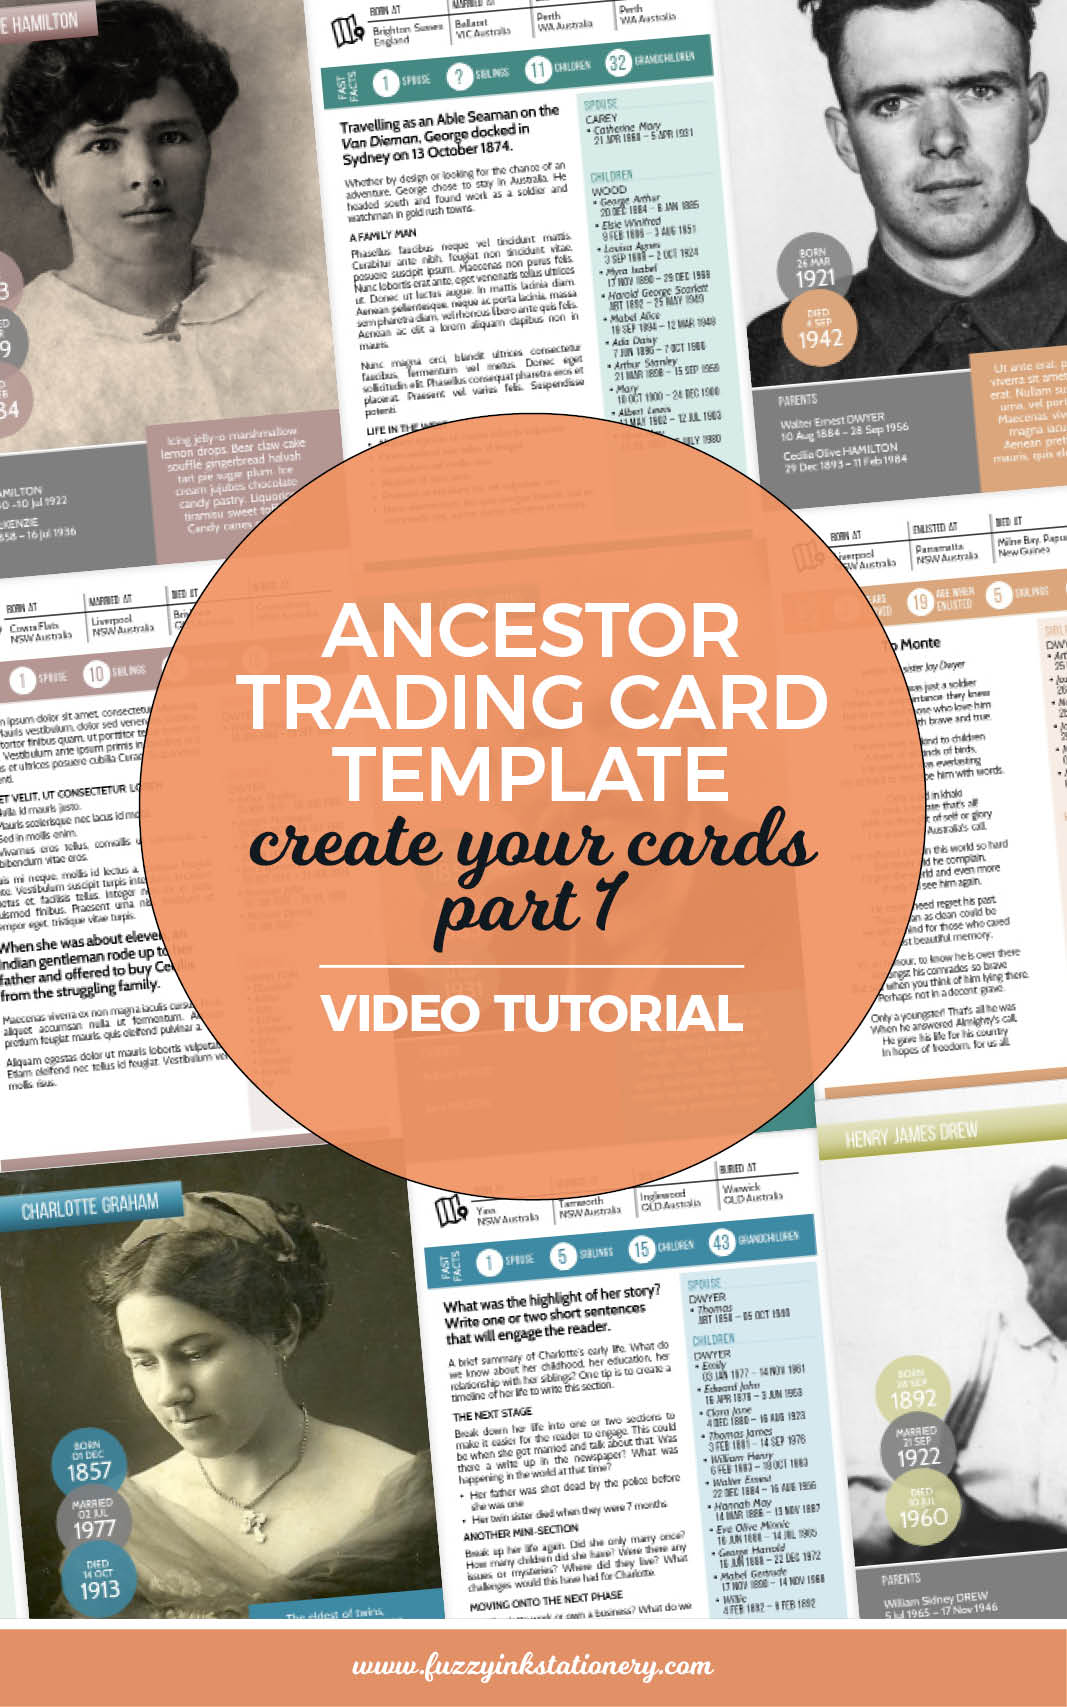 Fuzzy Ink Stationery Ancestor Trading Card Template Create Your Cards part 1 Tutorial